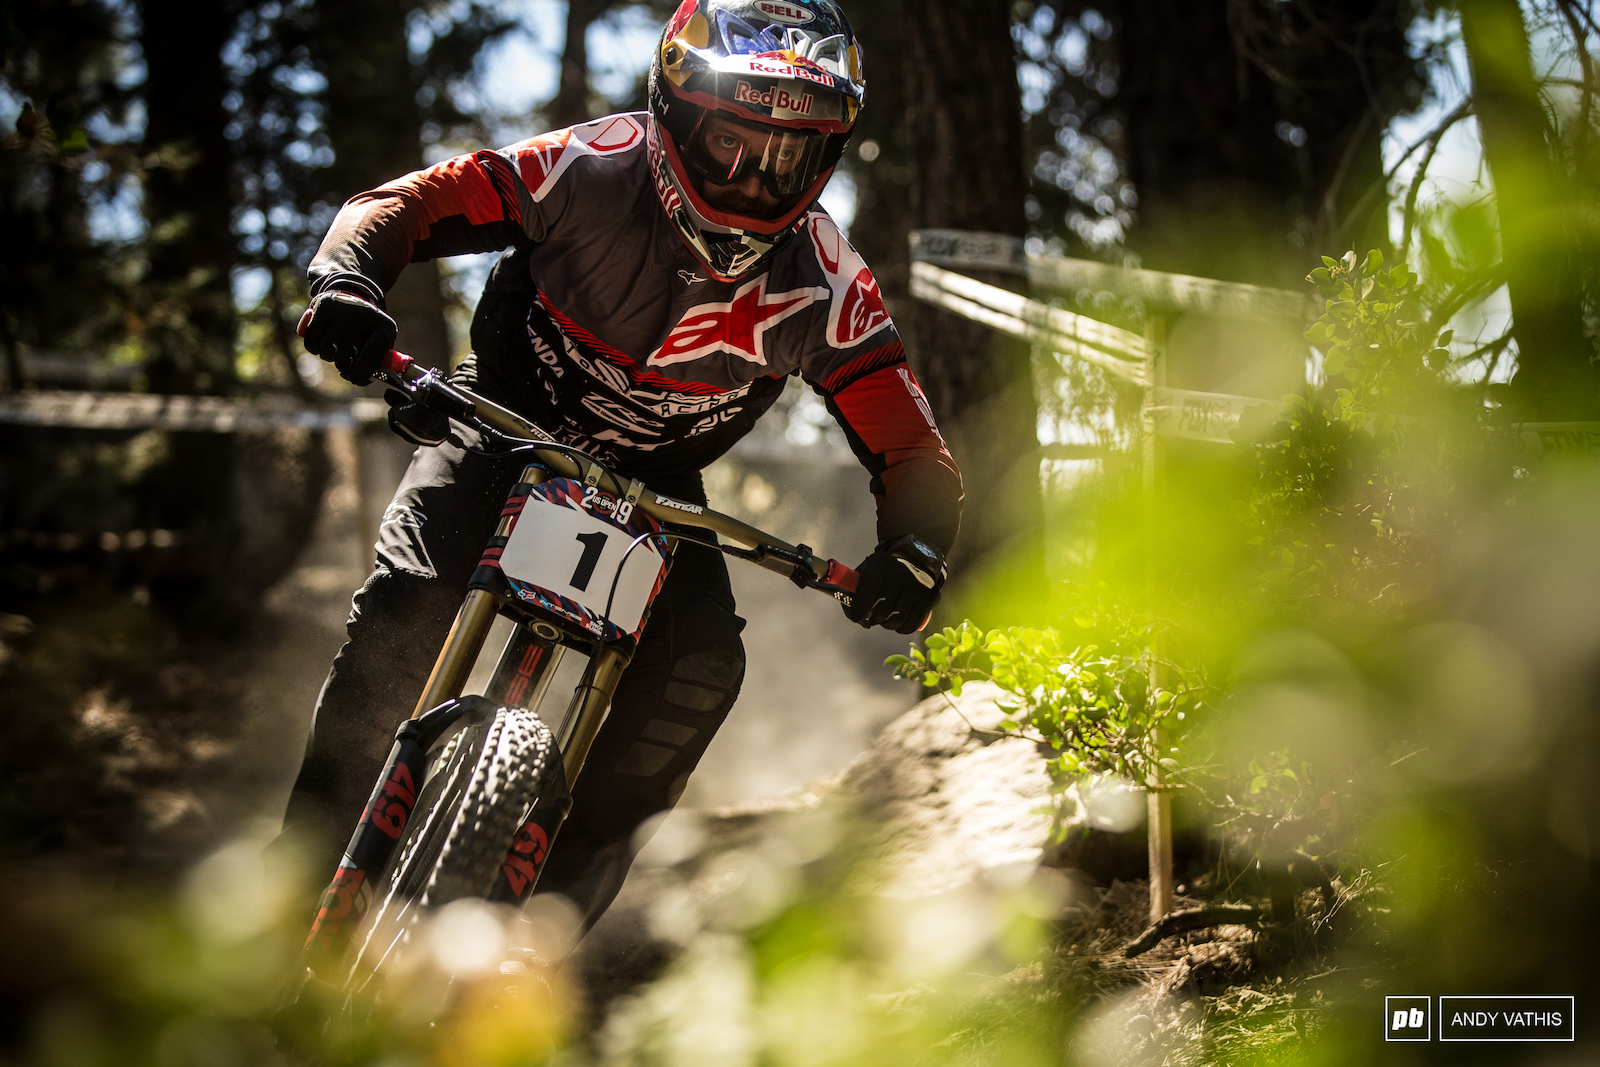 Aaron Gwin is a hungry man. A win here could very well bring confidence into the off season as 2020 rolls in.